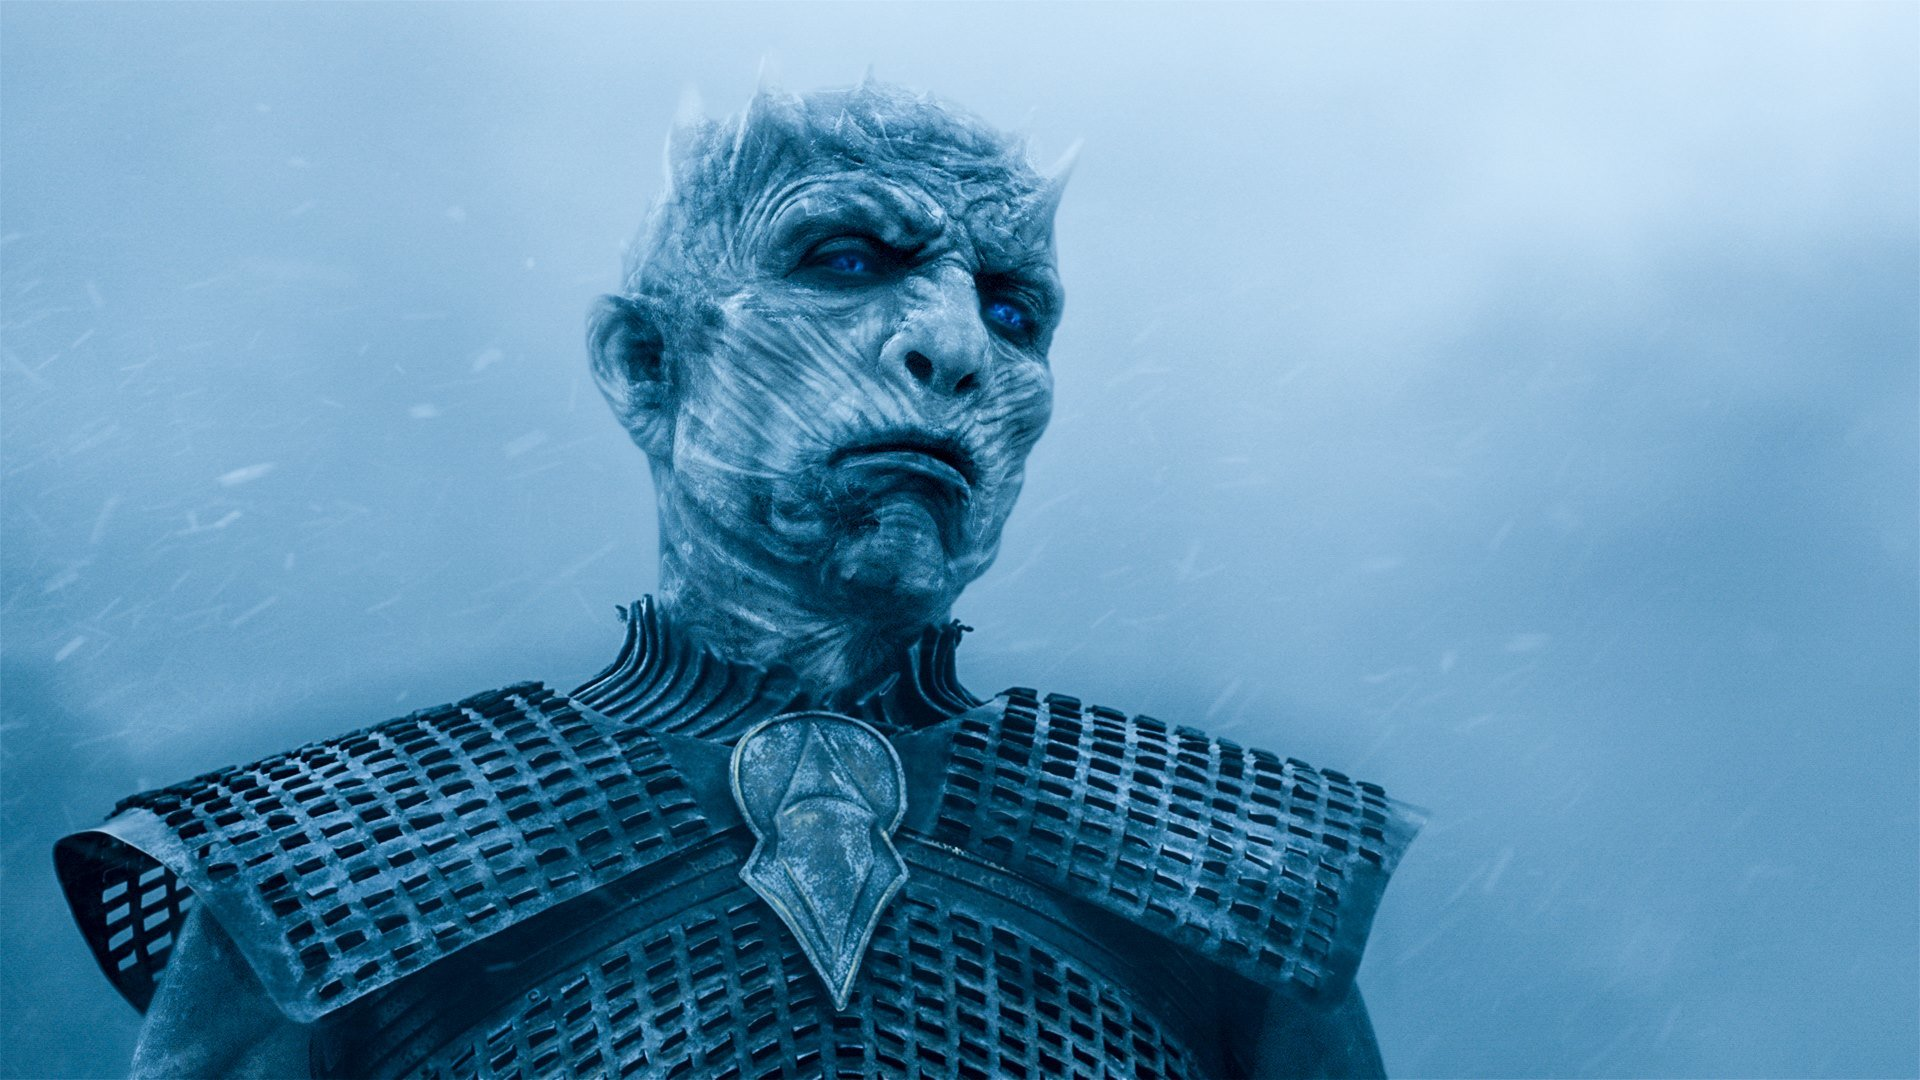 Night King Hd Hd Tv Shows 4k Wallpapers Images Backgrounds